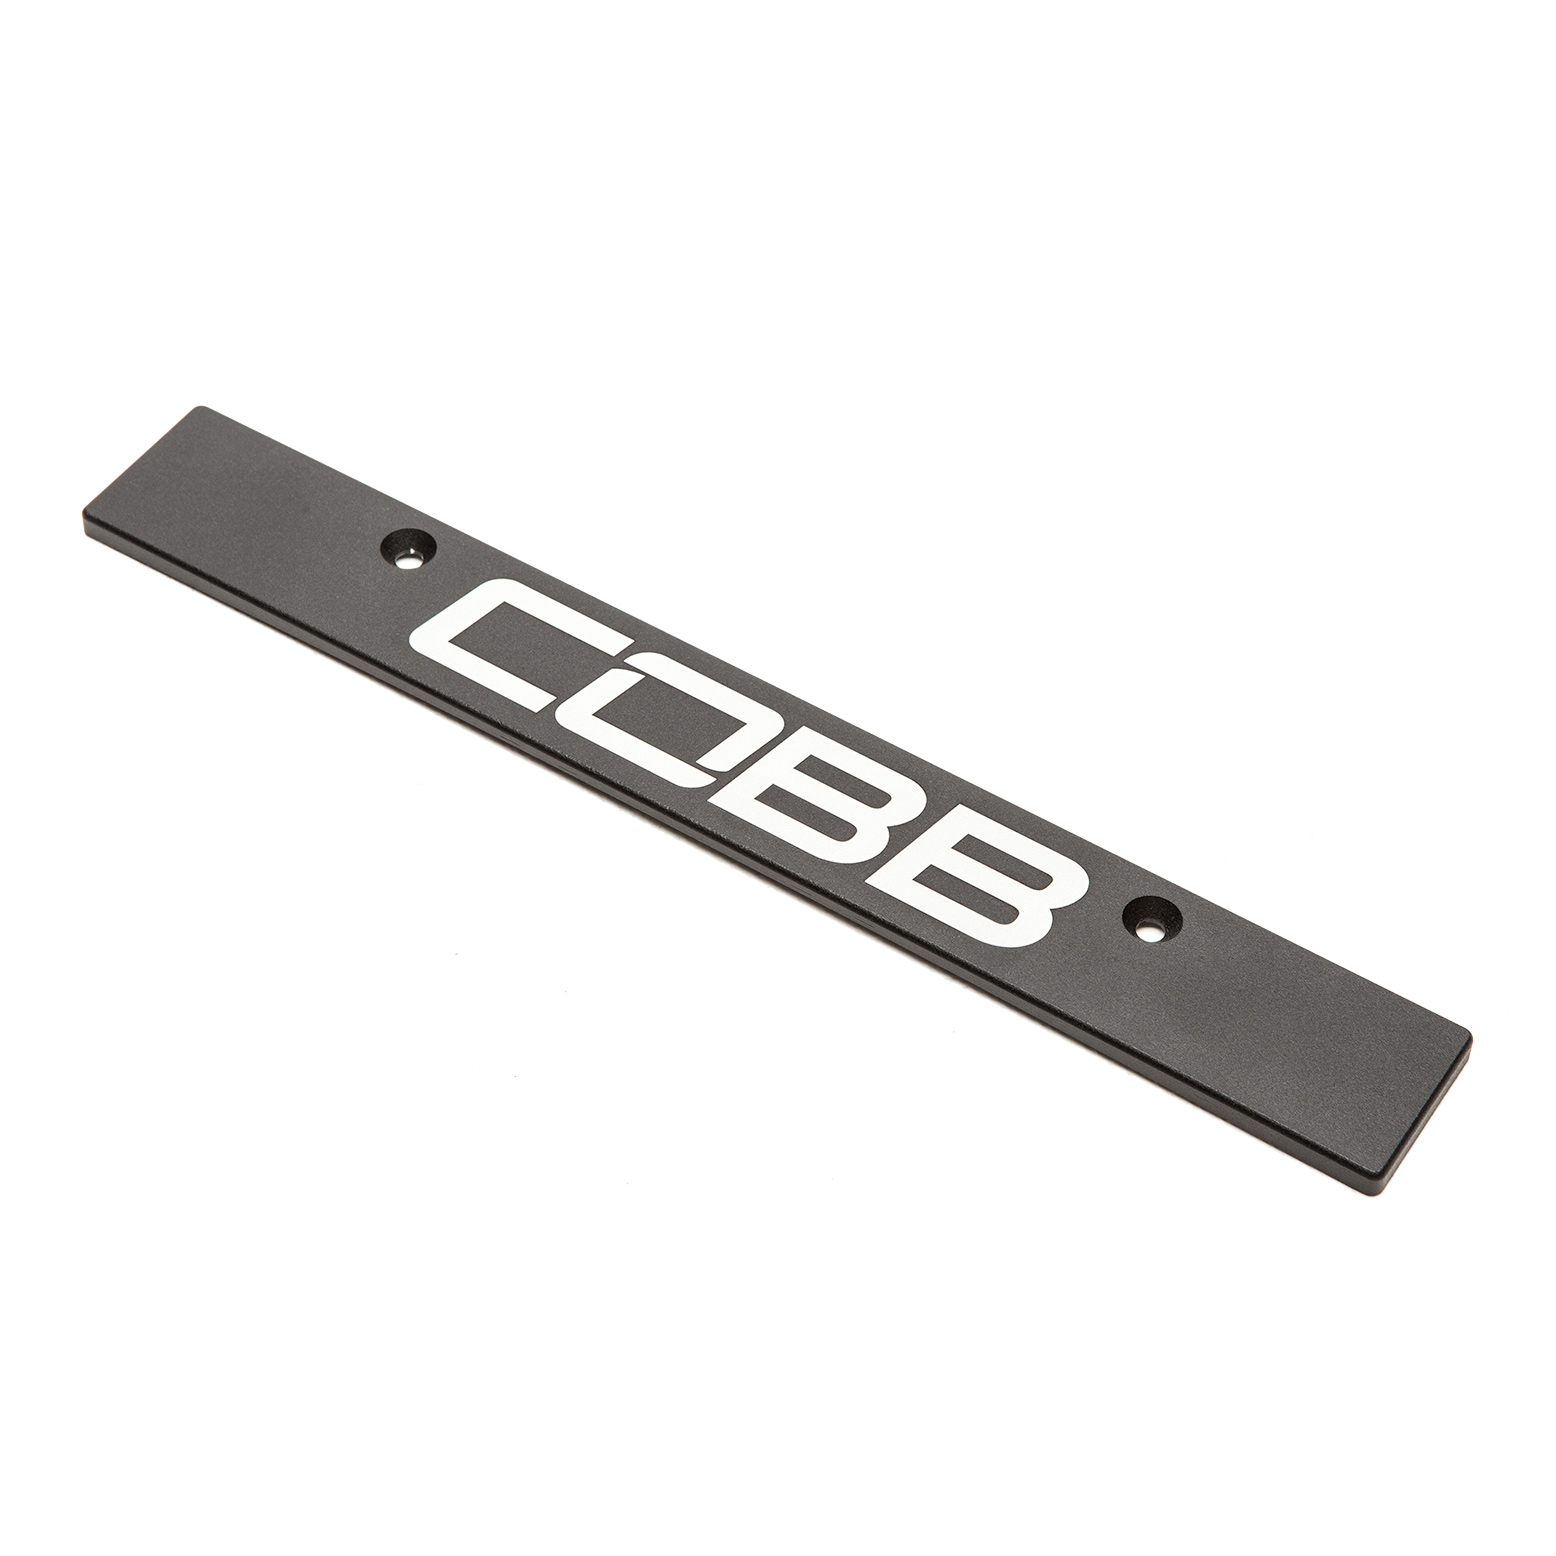 Cobb 812060 License Plate Delete for Subaru